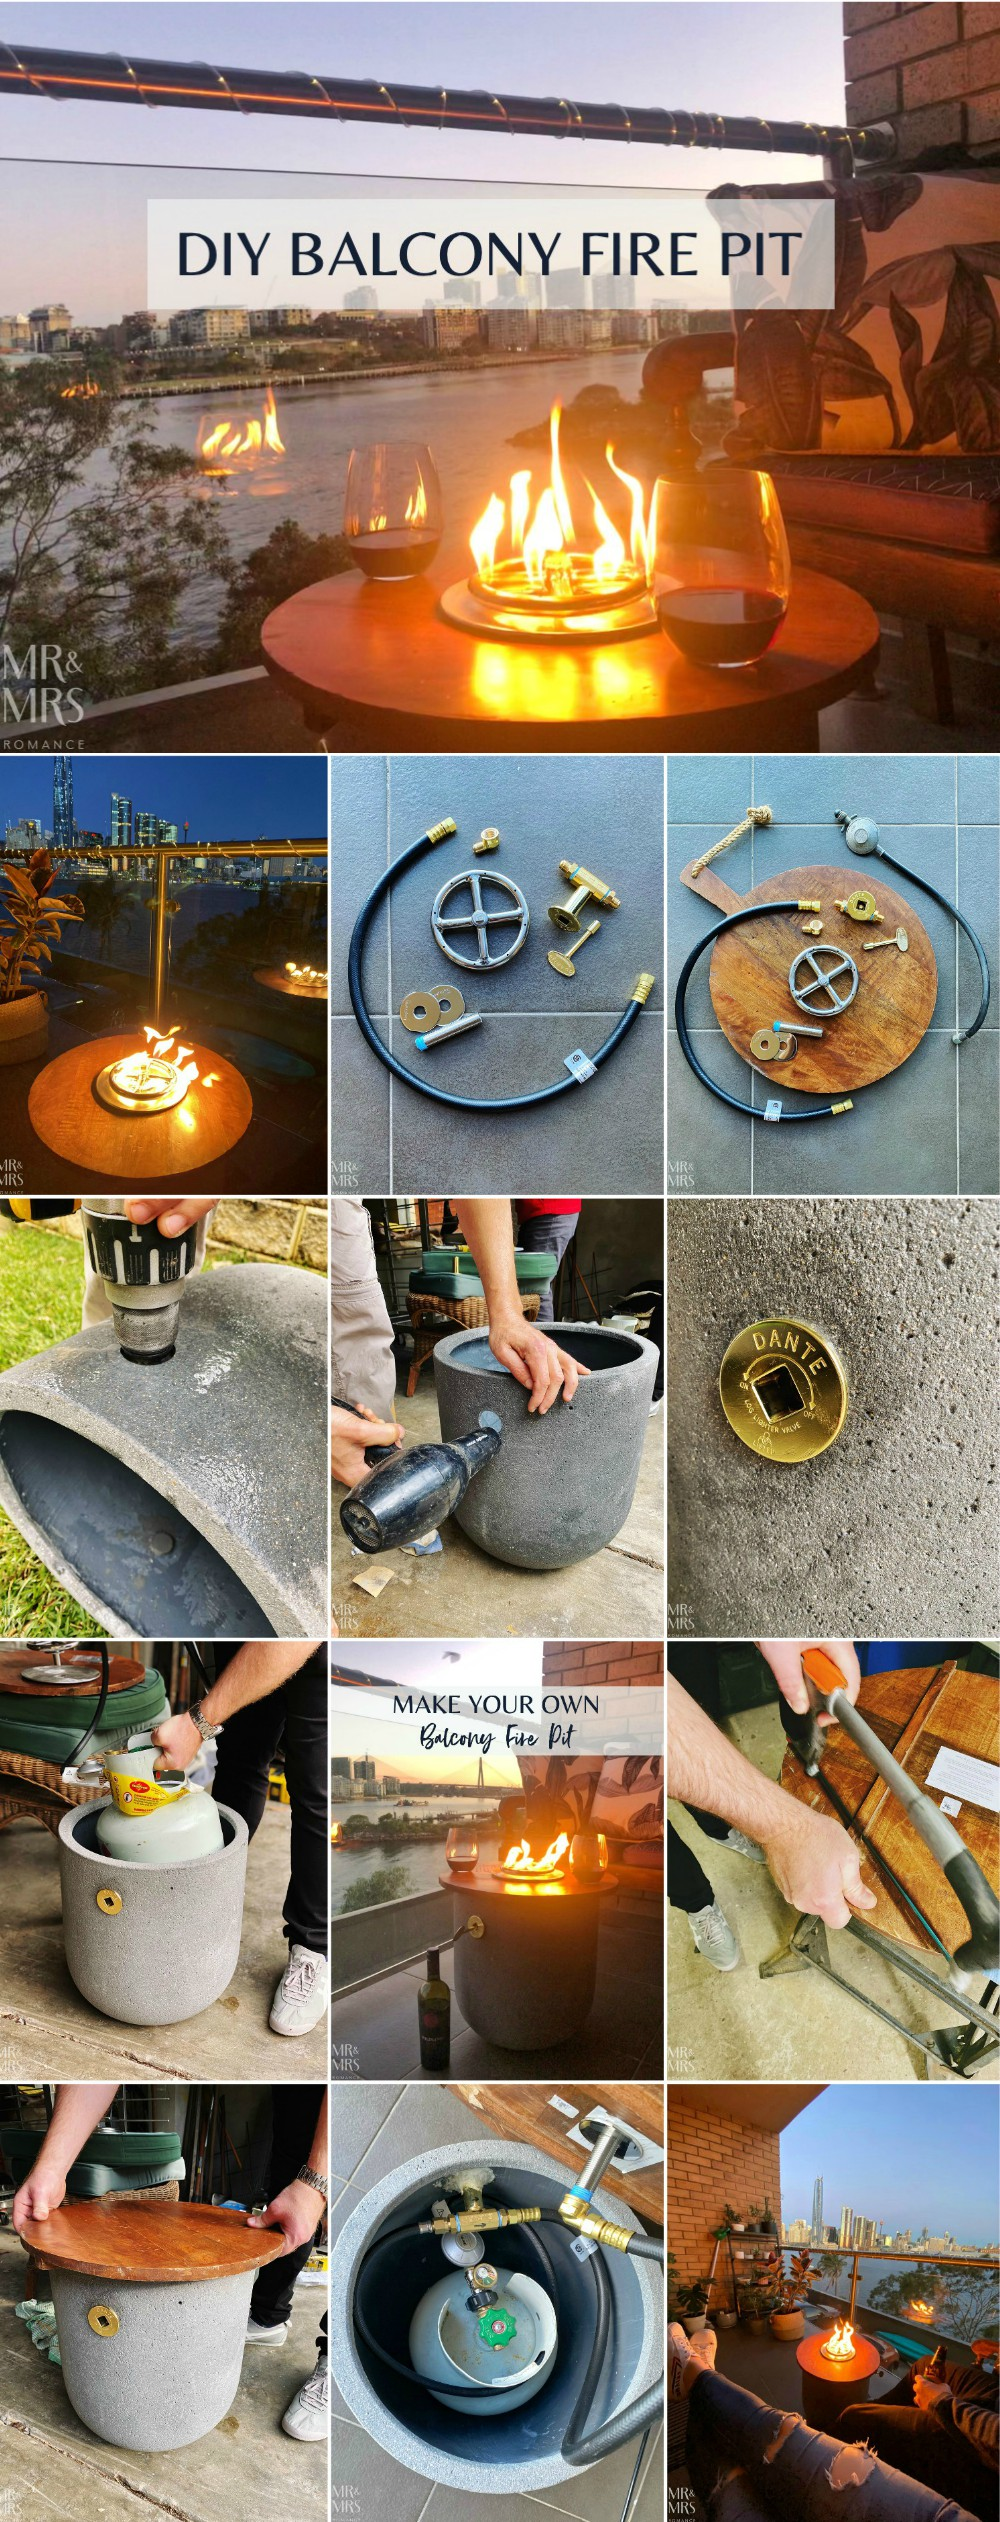 How to make your own gas fire pit balcony